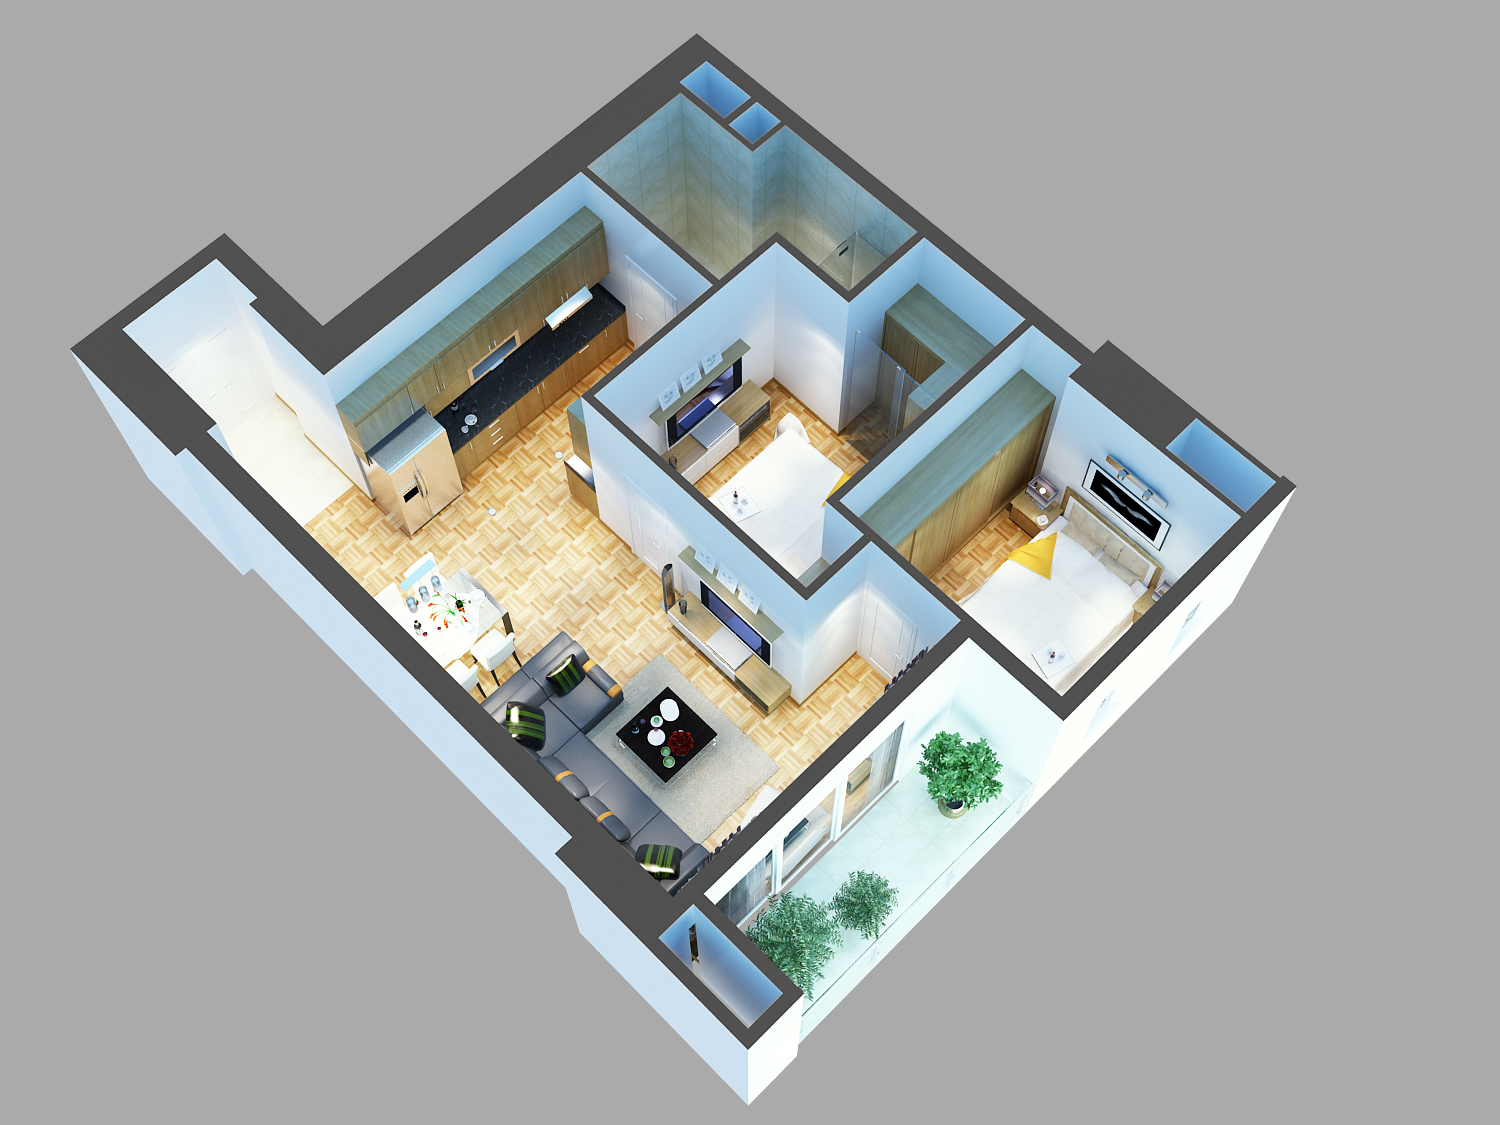 Detailed house cutaway 3d model buy detailed house for 3d model room design